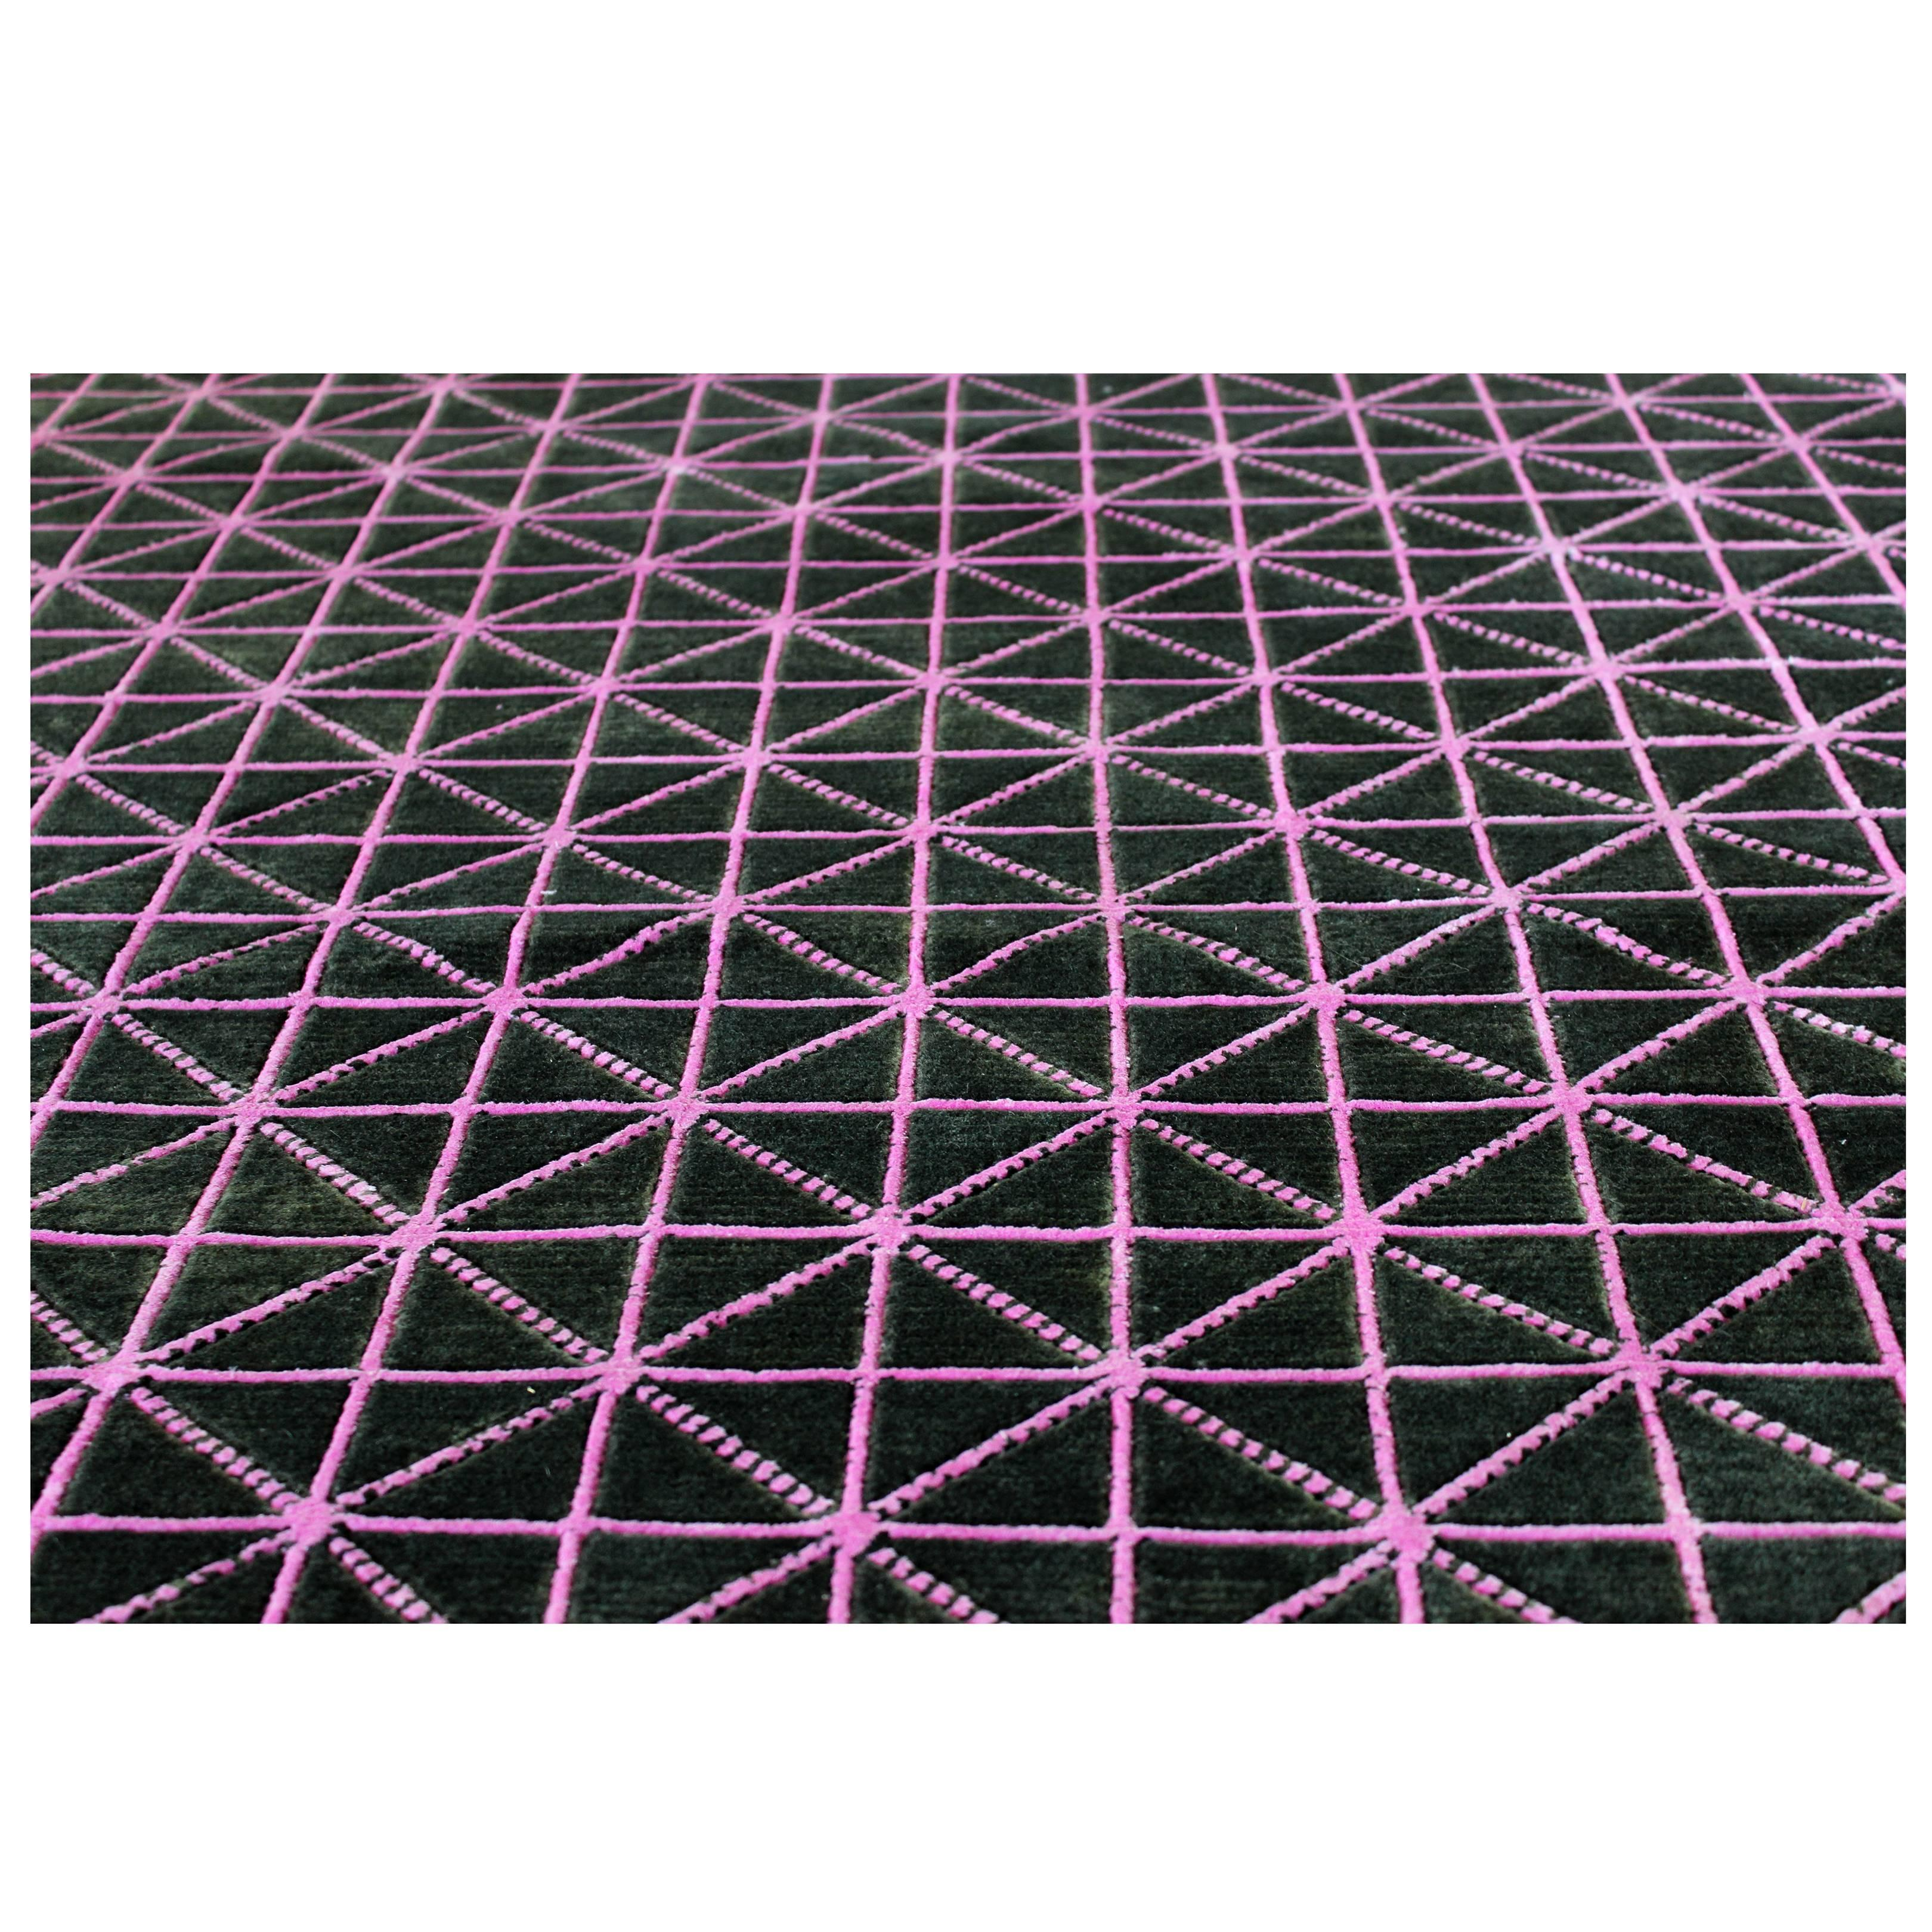 """Hand-Woven Silk and Wool Rug, """"Align"""" by Joe Doucet, Limited Edition"""